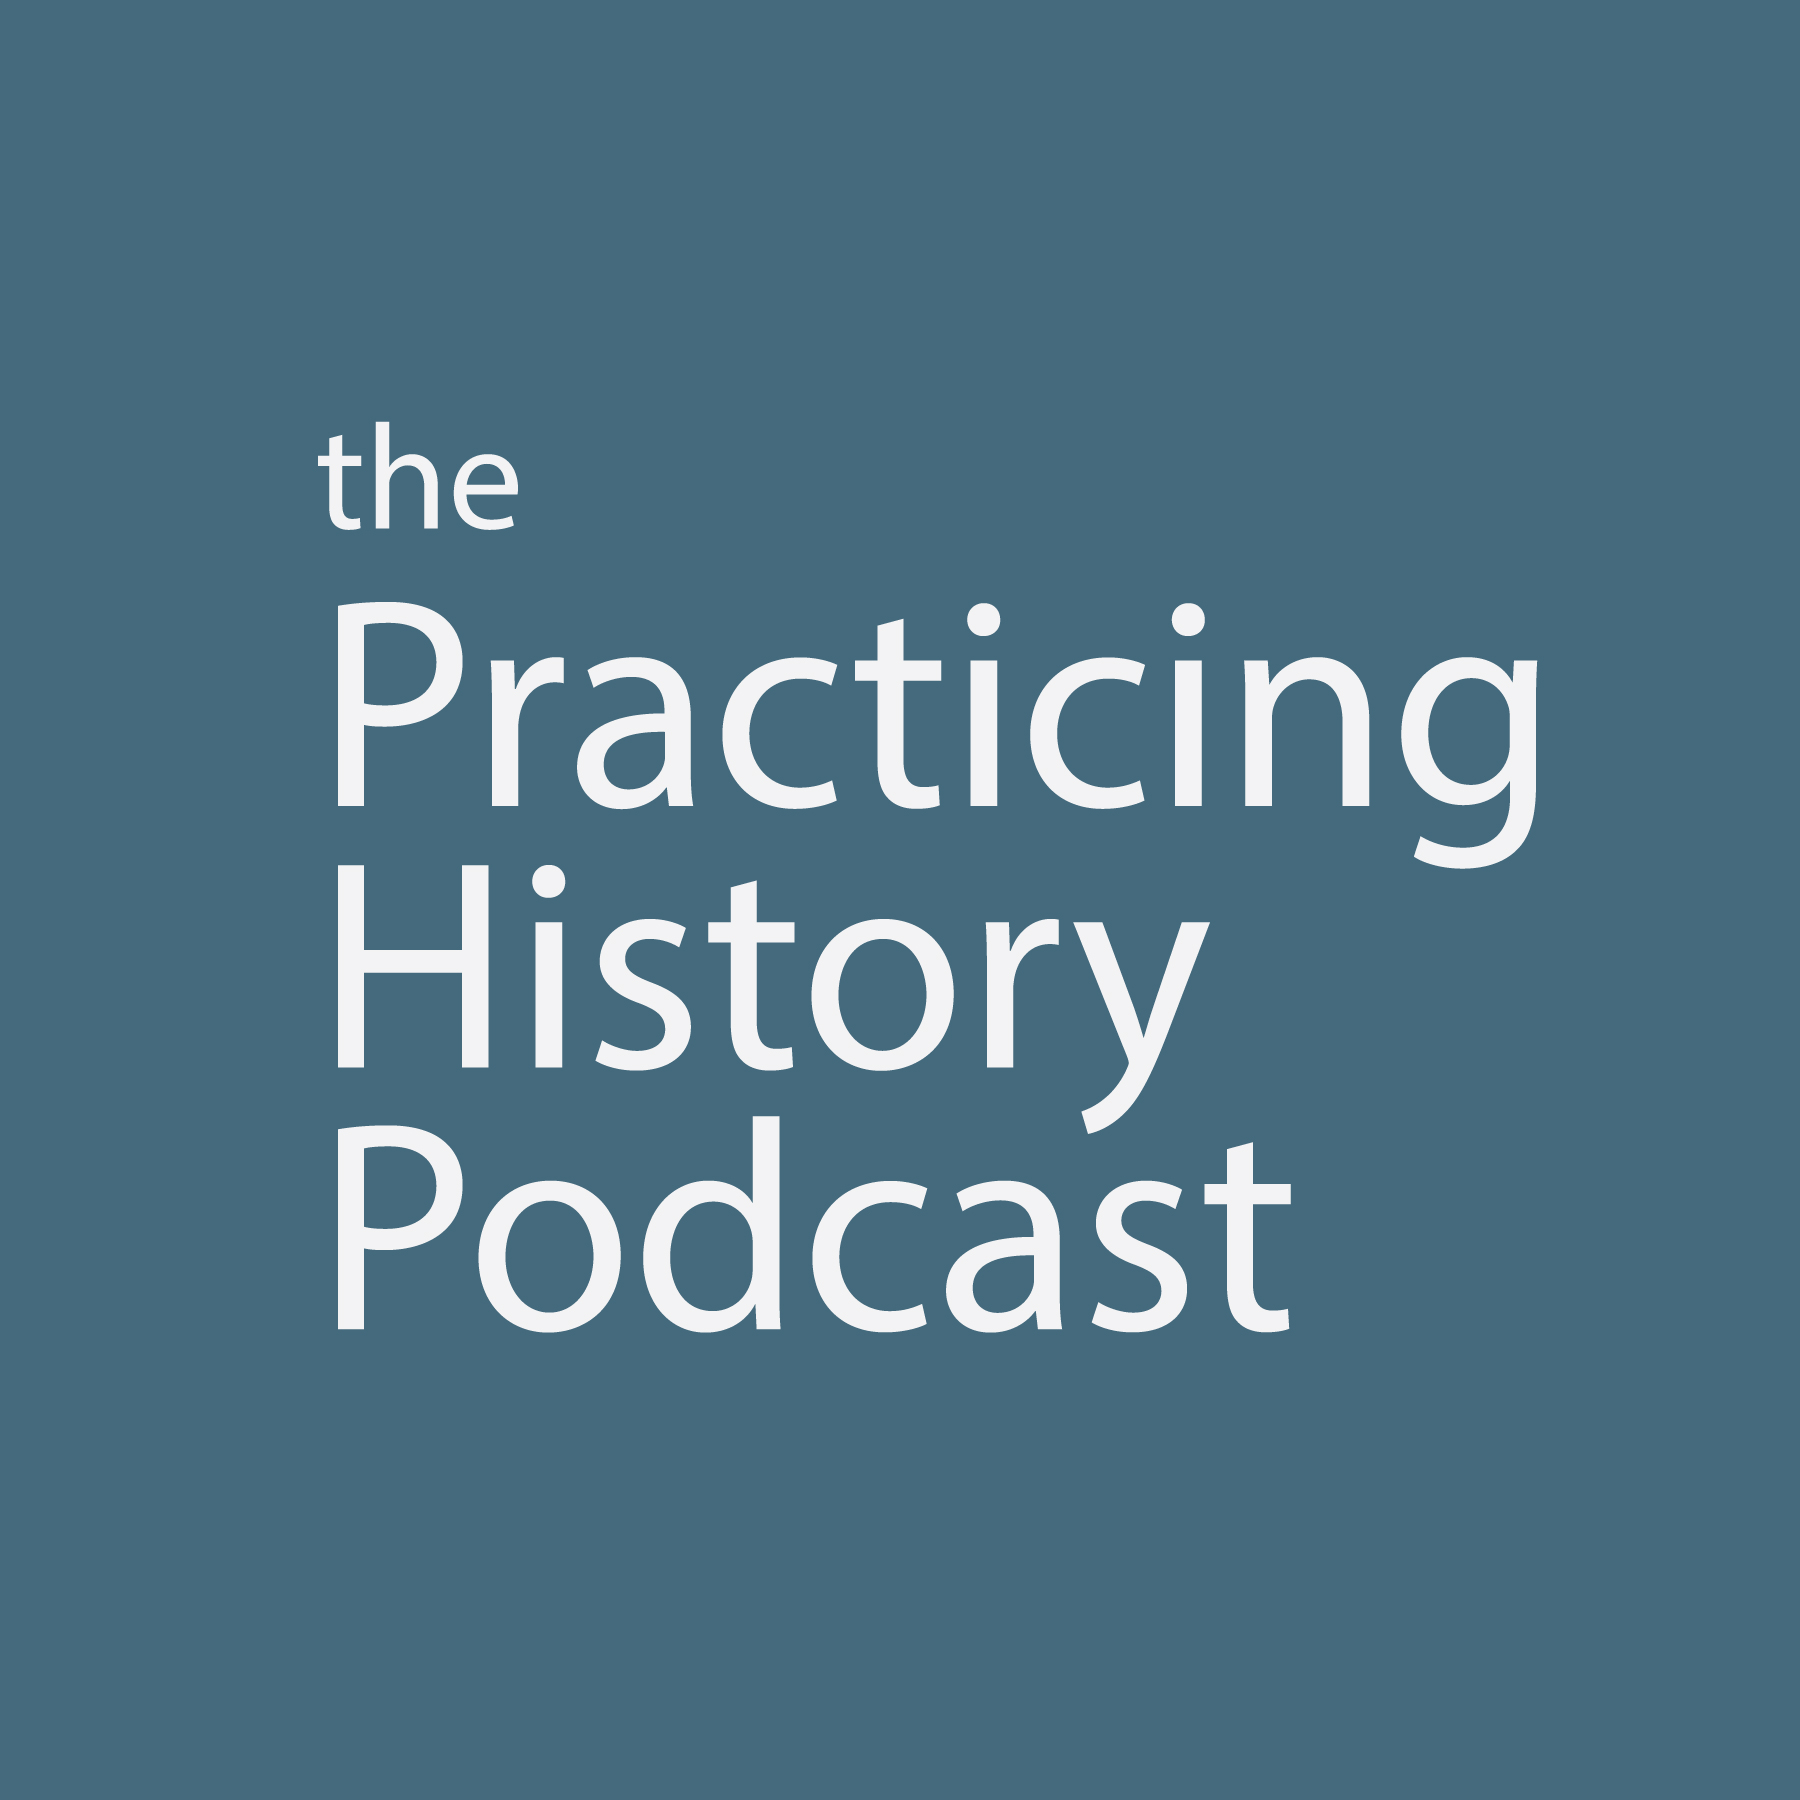 Practicing History Podcast Logo